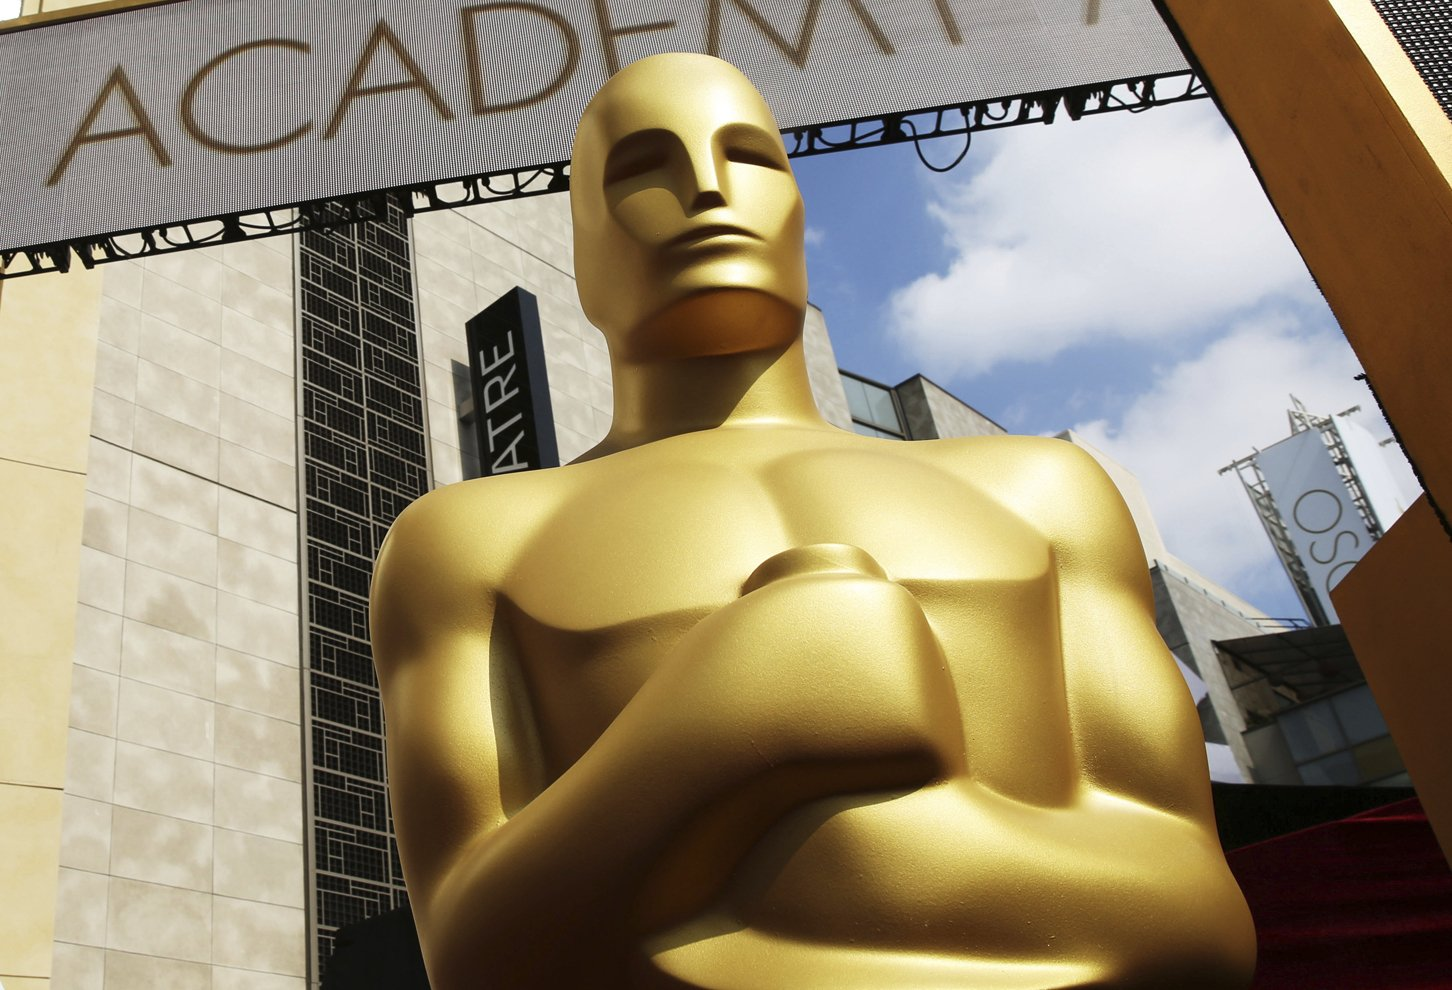 FILE - In this Feb. 21, 2015, file photo, an Oscar statue appears outside the Dolby Theatre for the 87th Academy Awards in Los Angeles. Photo: AP